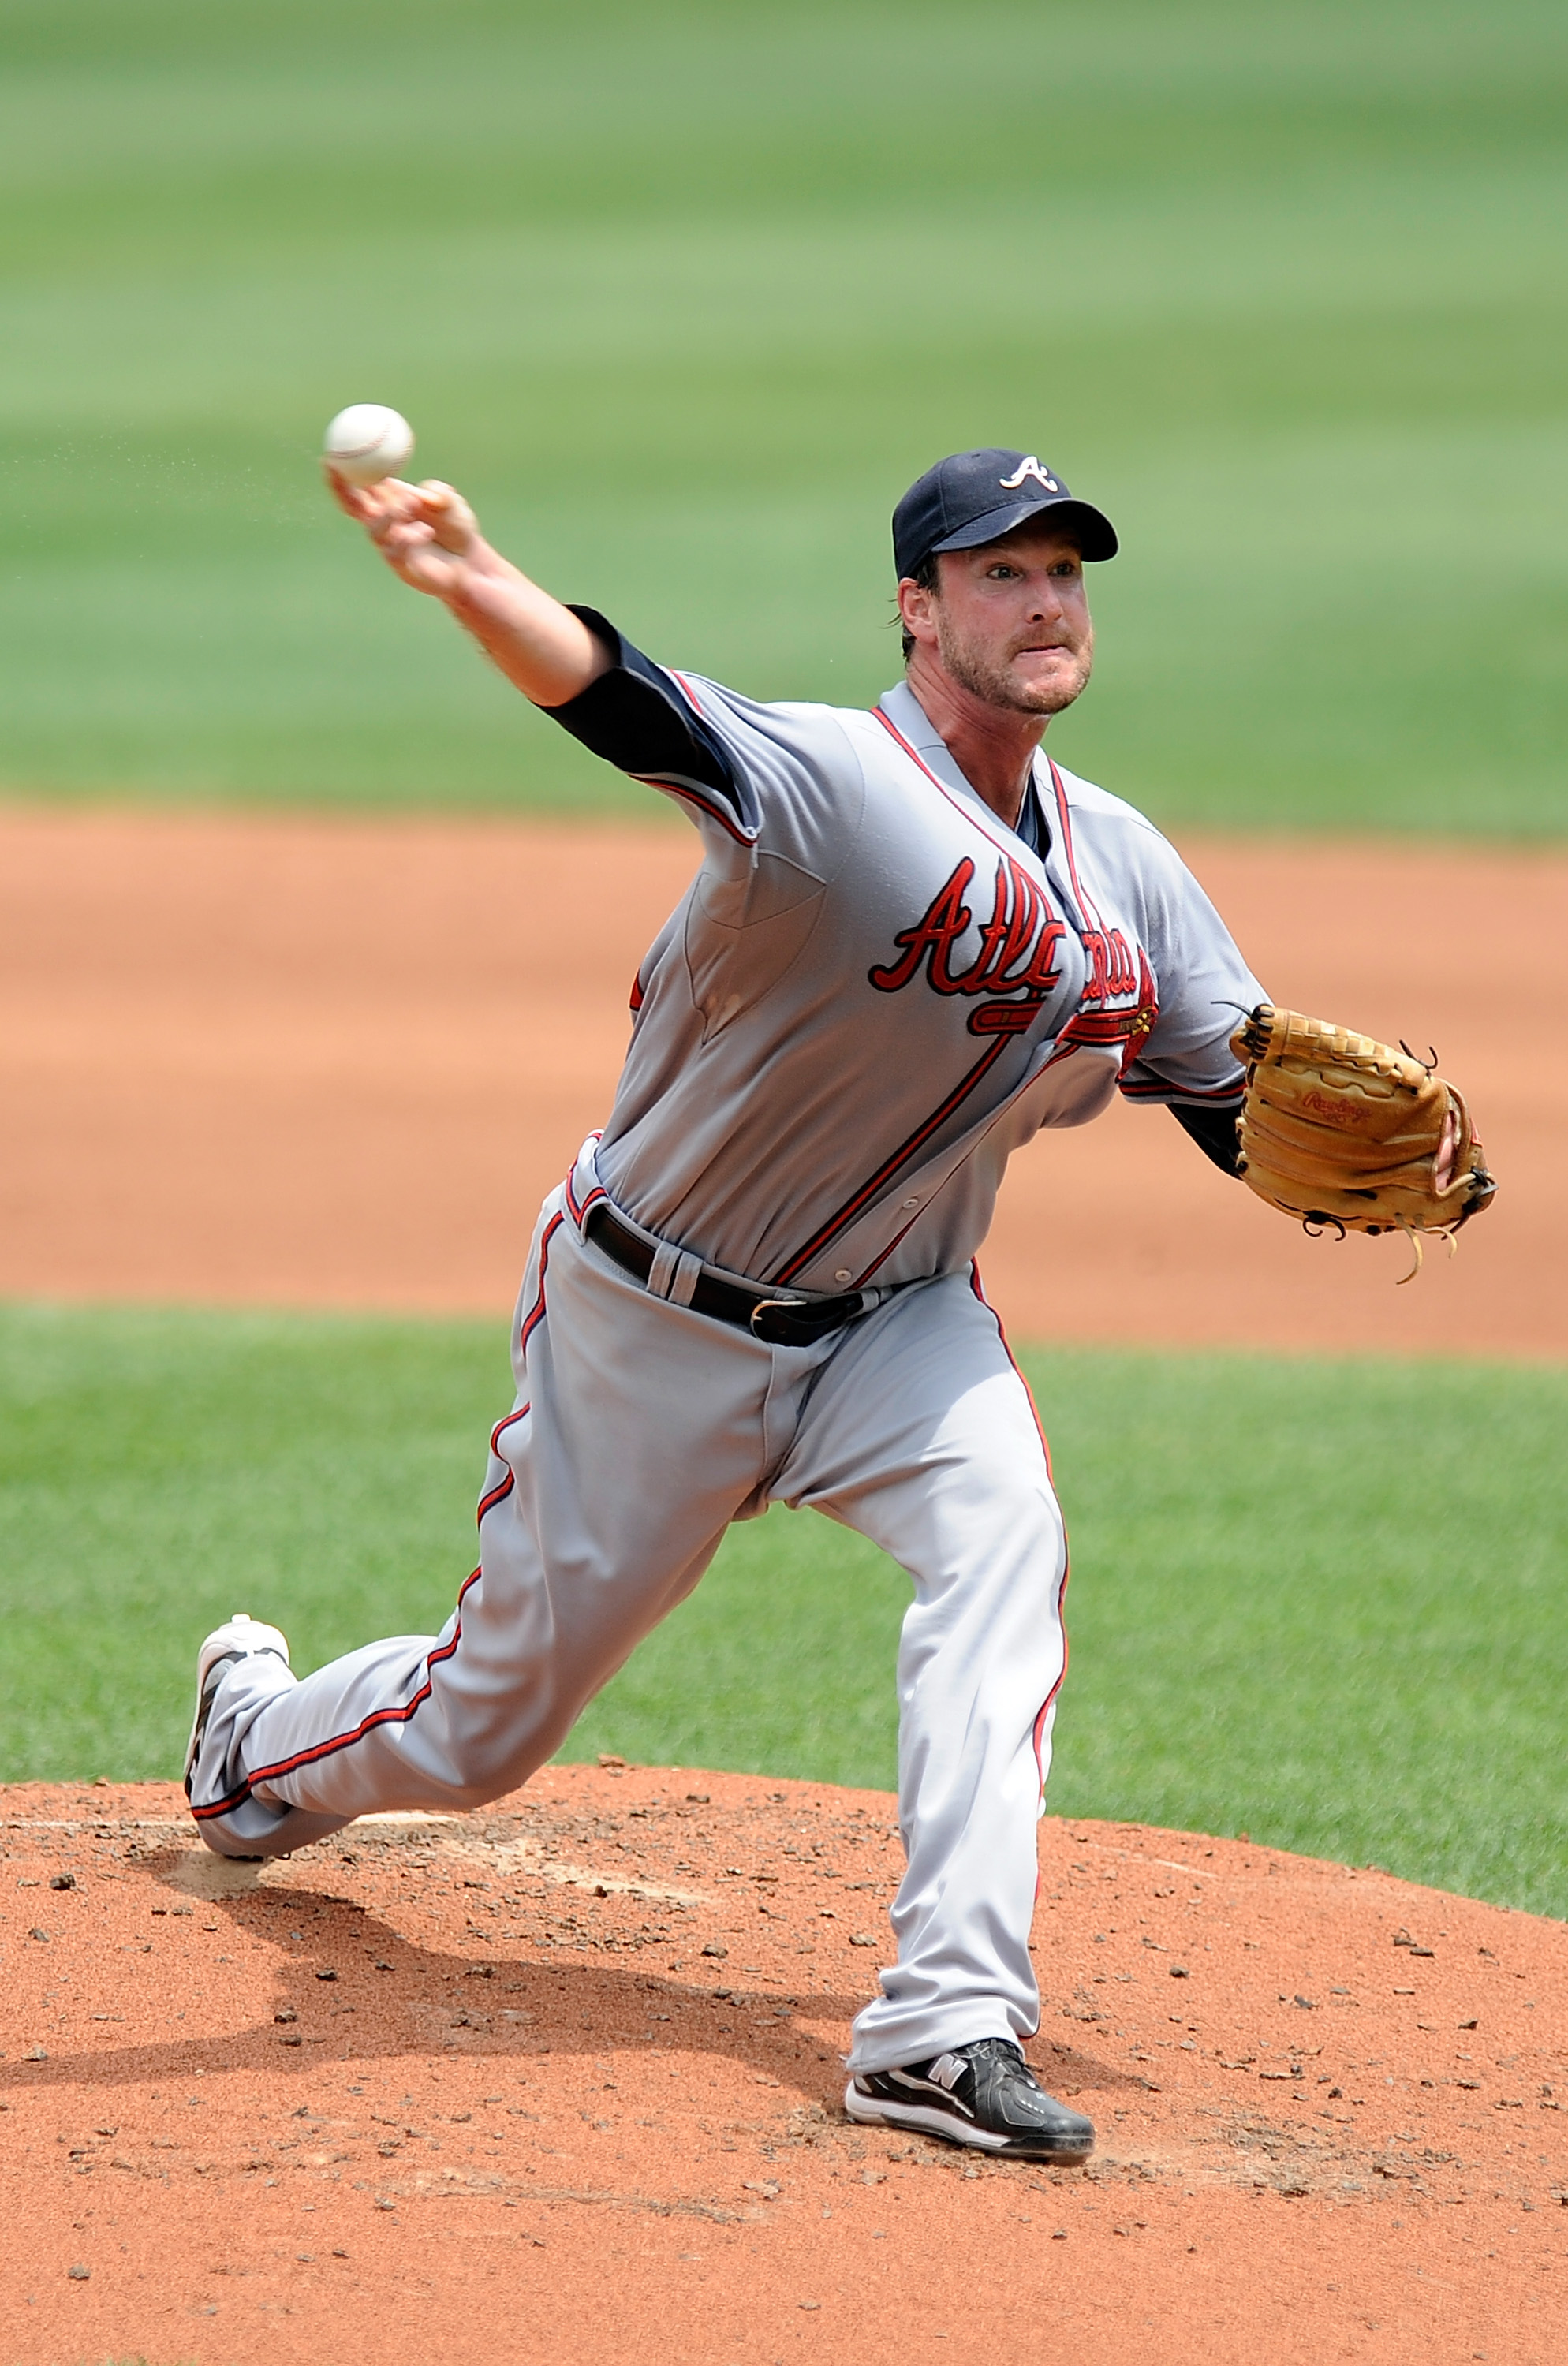 Image result for Braves Pitcher Tim Hudson Calls The Infield Fly Play One Of The Worst Calls Ever, Backs Up Fans